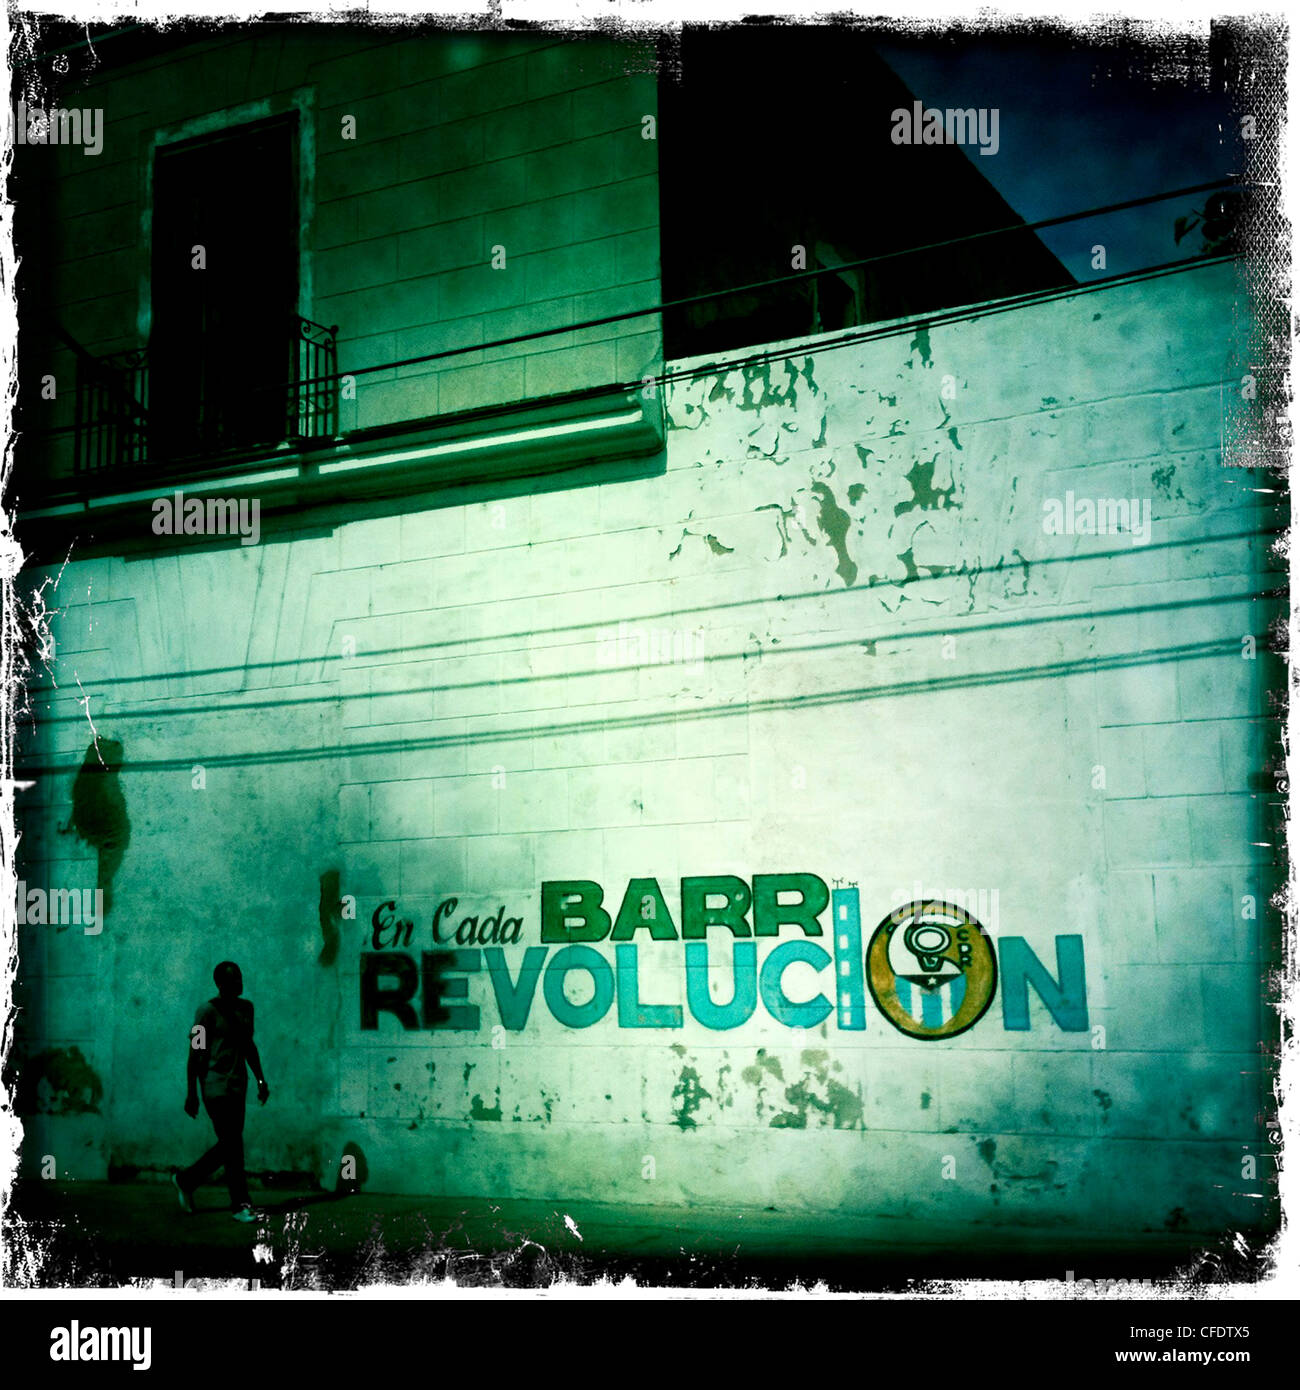 Mural celebrating the Revolution with lone figure walking, Cienfuegos, Cuba, West Indies, Caribbean, Central America - Stock Image